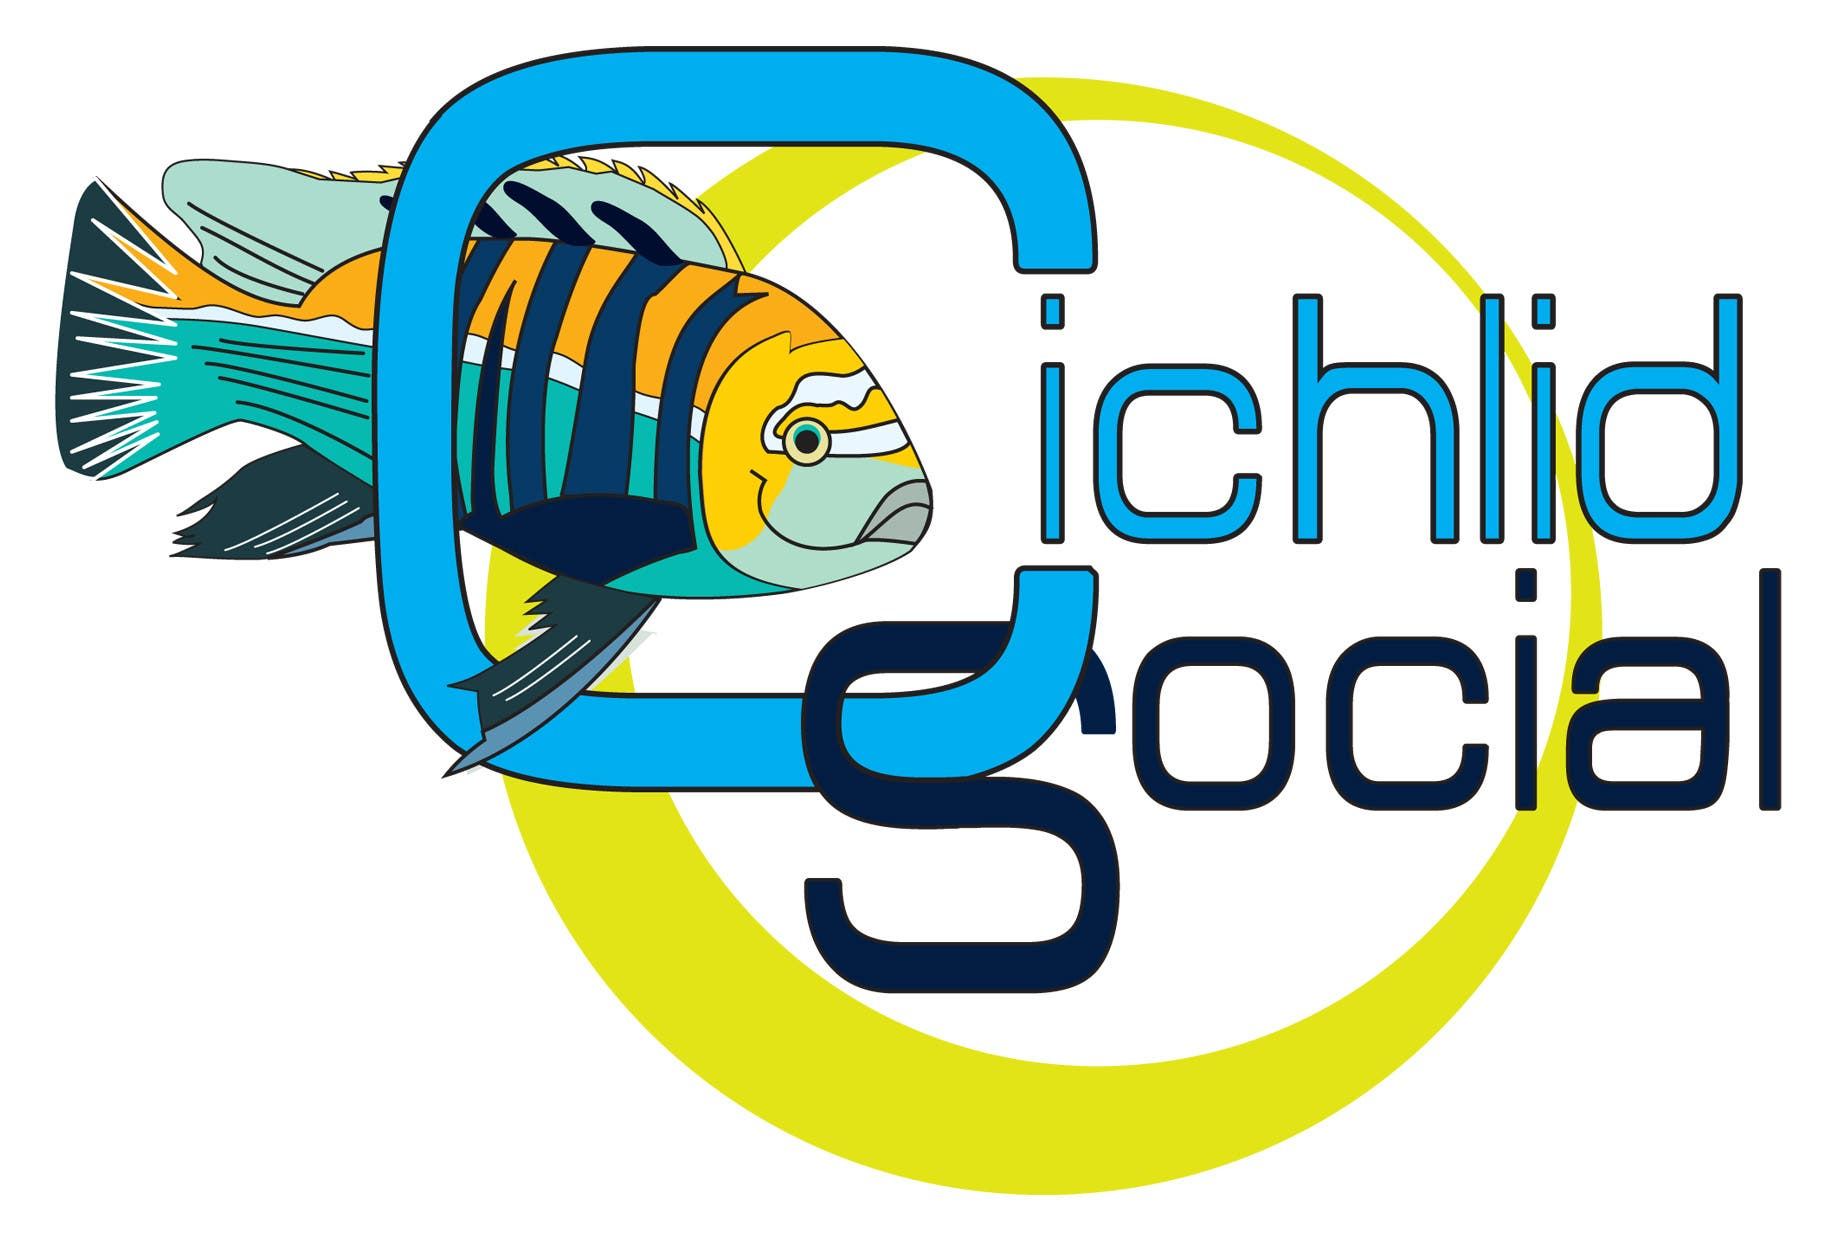 Profile image of CichlidSocial